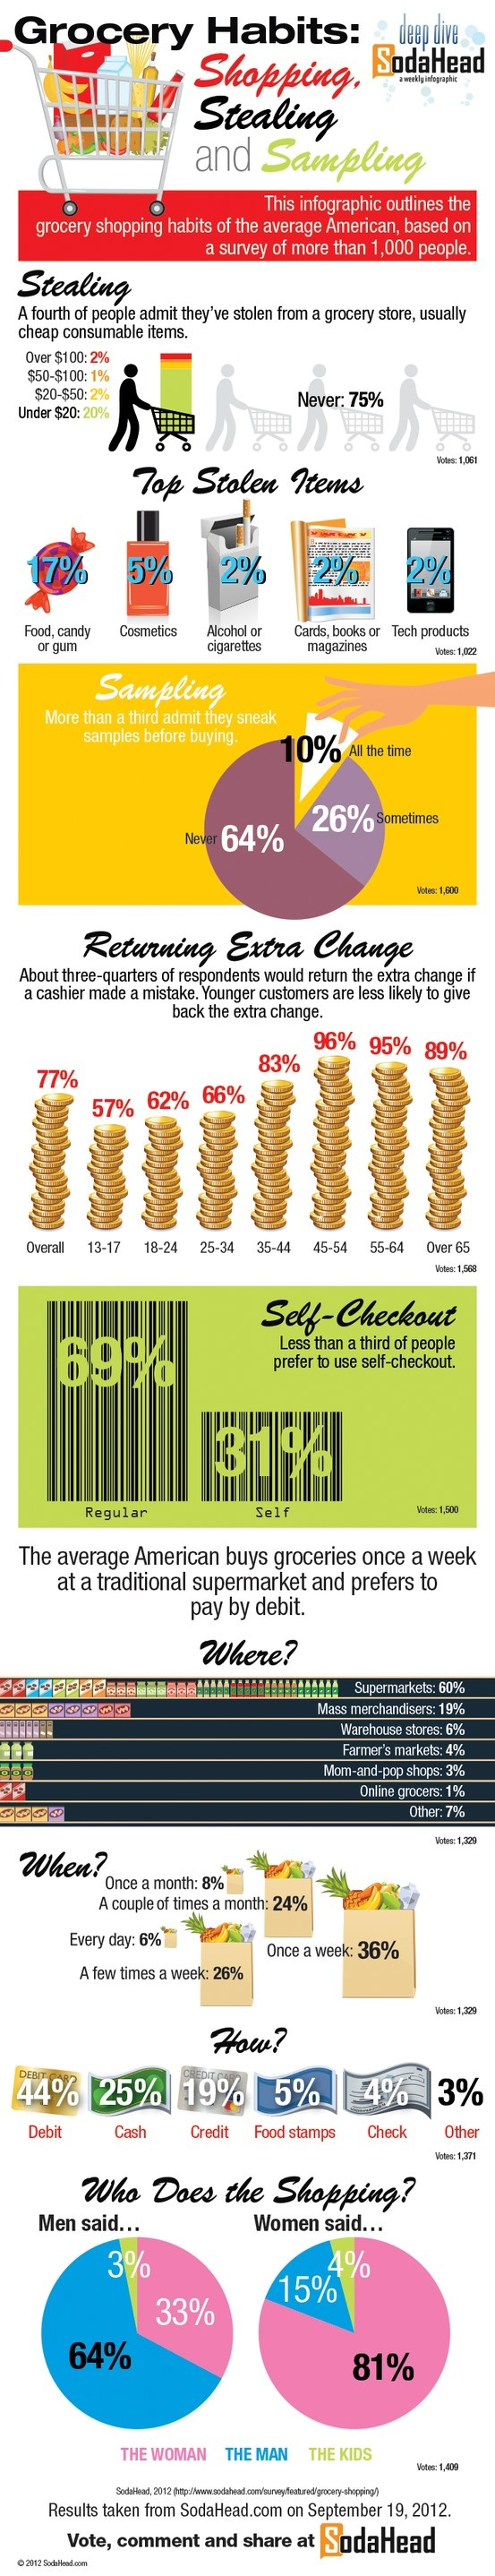 Grocery Habits: Shopping, Stealing, and Sampling.